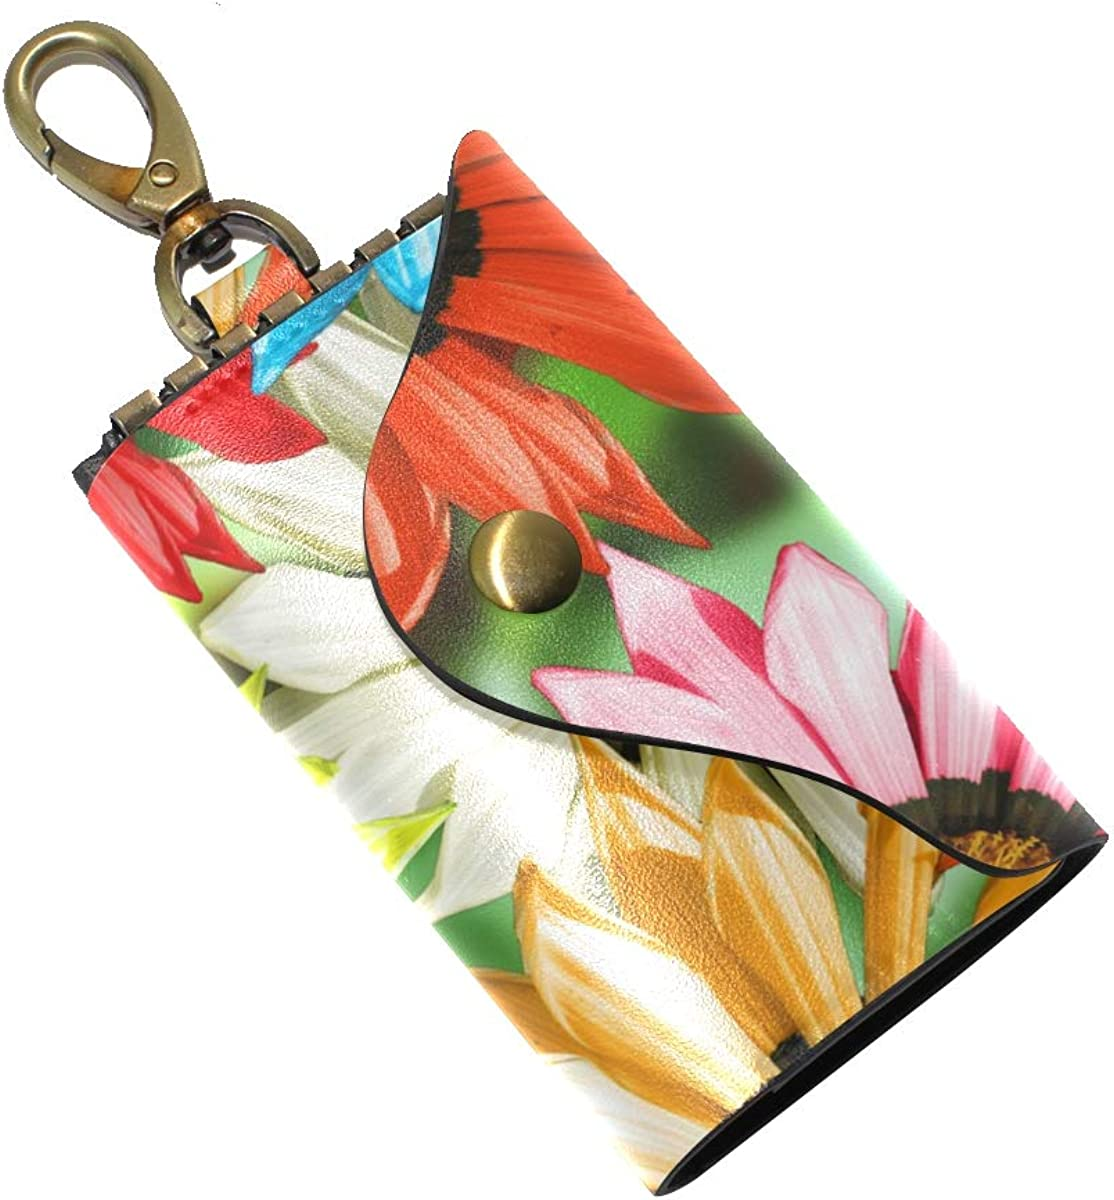 KEAKIA Gerbera Print Leather Key Case Wallets Tri-fold Key Holder Keychains with 6 Hooks 2 Slot Snap Closure for Men Women